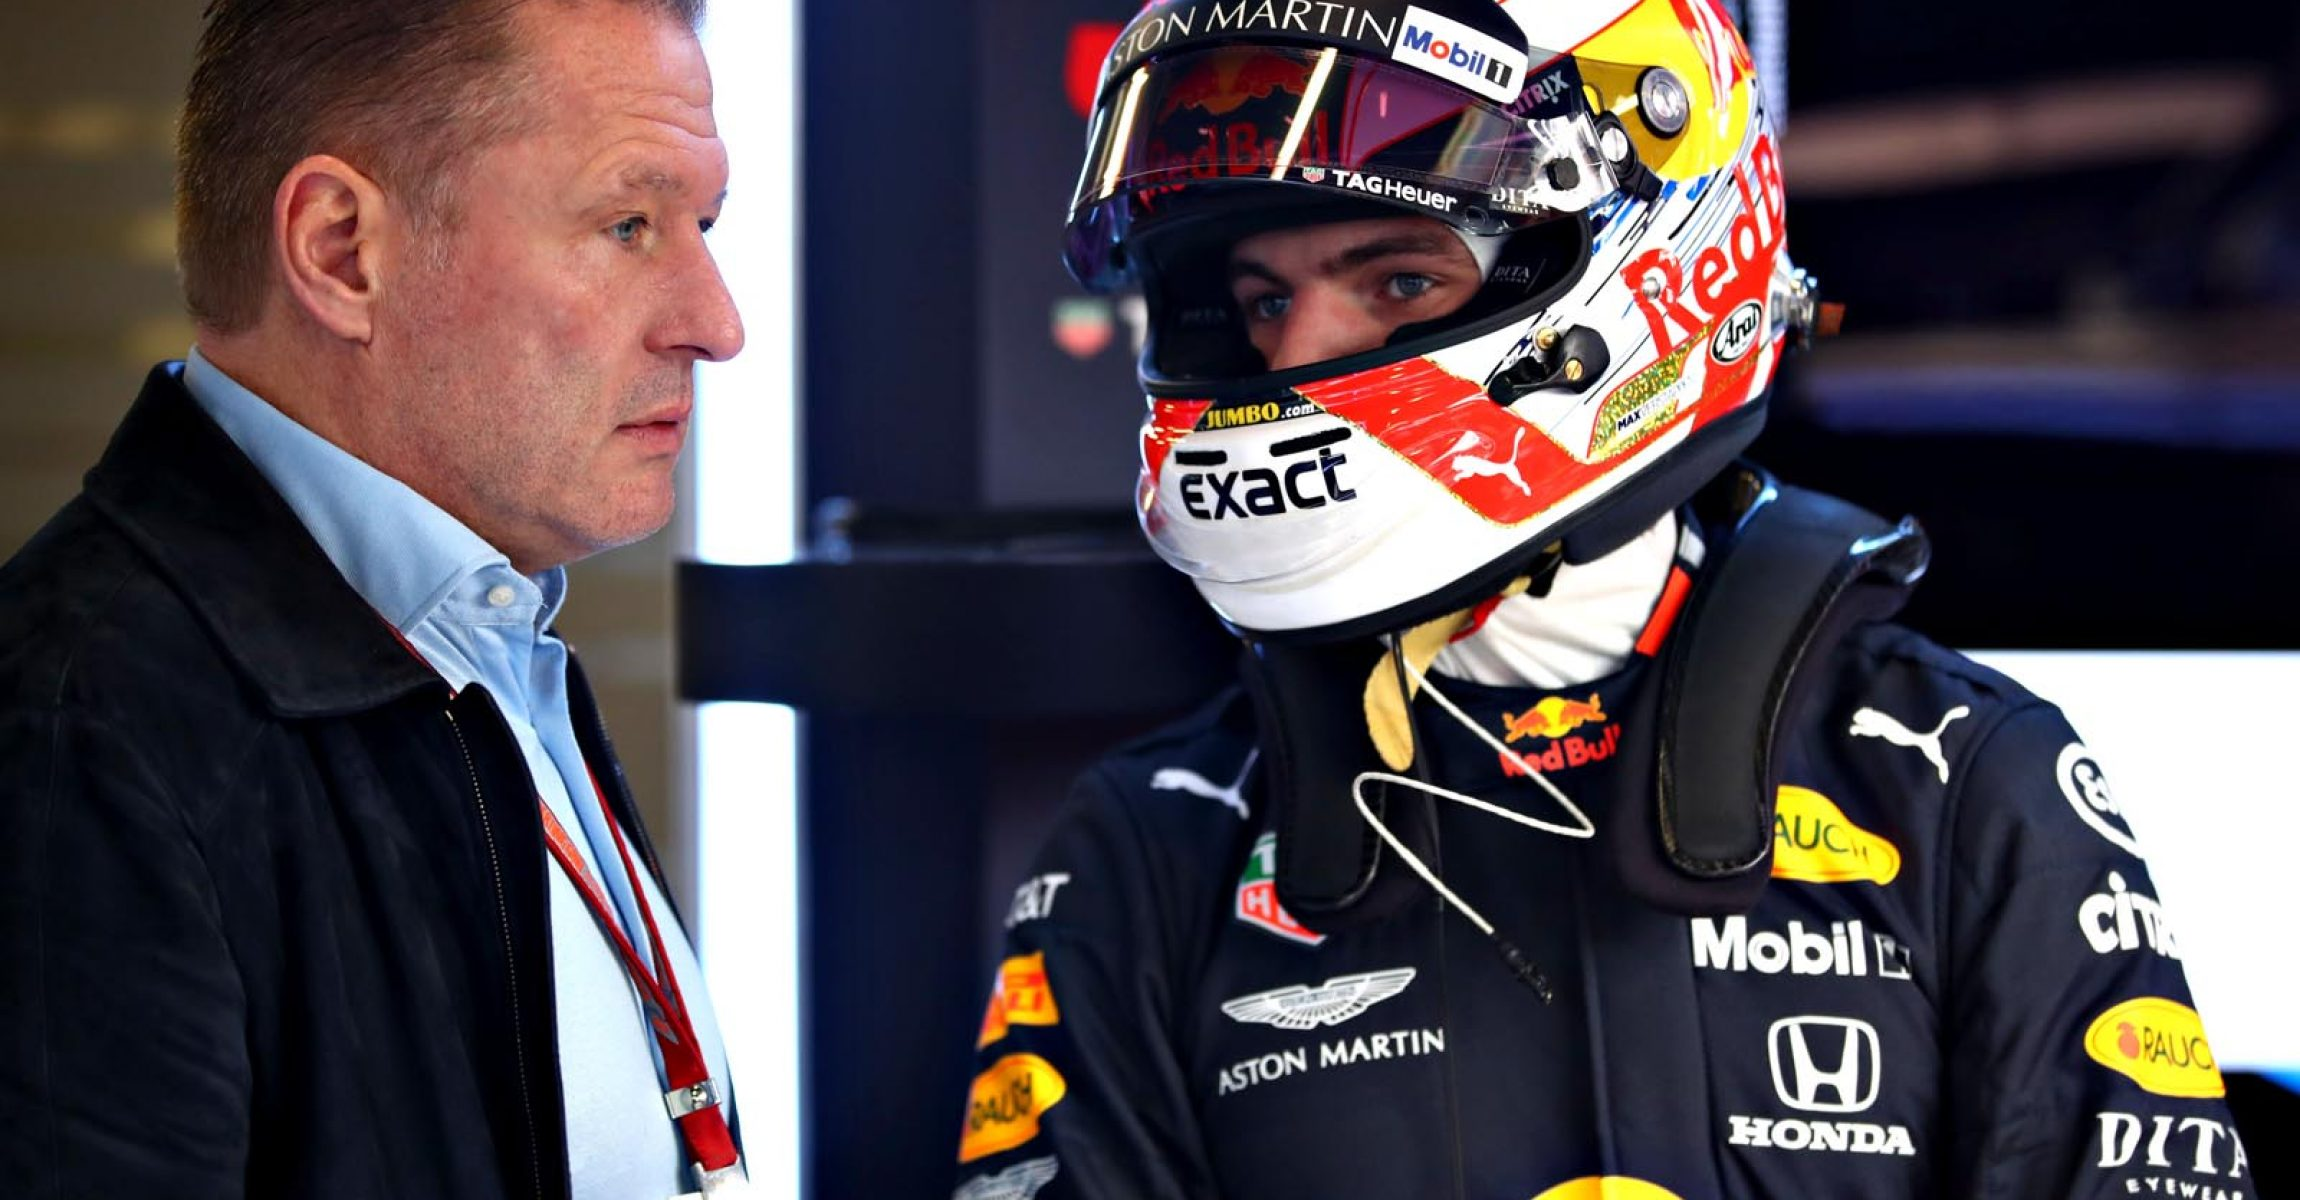 MONTMELO, SPAIN - FEBRUARY 20: Max Verstappen of Netherlands and Red Bull Racing talks with his father Jos Verstappen in the garage during day three of F1 Winter Testing at Circuit de Catalunya on February 20, 2019 in Montmelo, Spain. (Photo by Mark Thompson/Getty Images) // Getty Images / Red Bull Content Pool  // AP-1YGD8MNUD1W11 // Usage for editorial use only // Please go to www.redbullcontentpool.com for further information. //